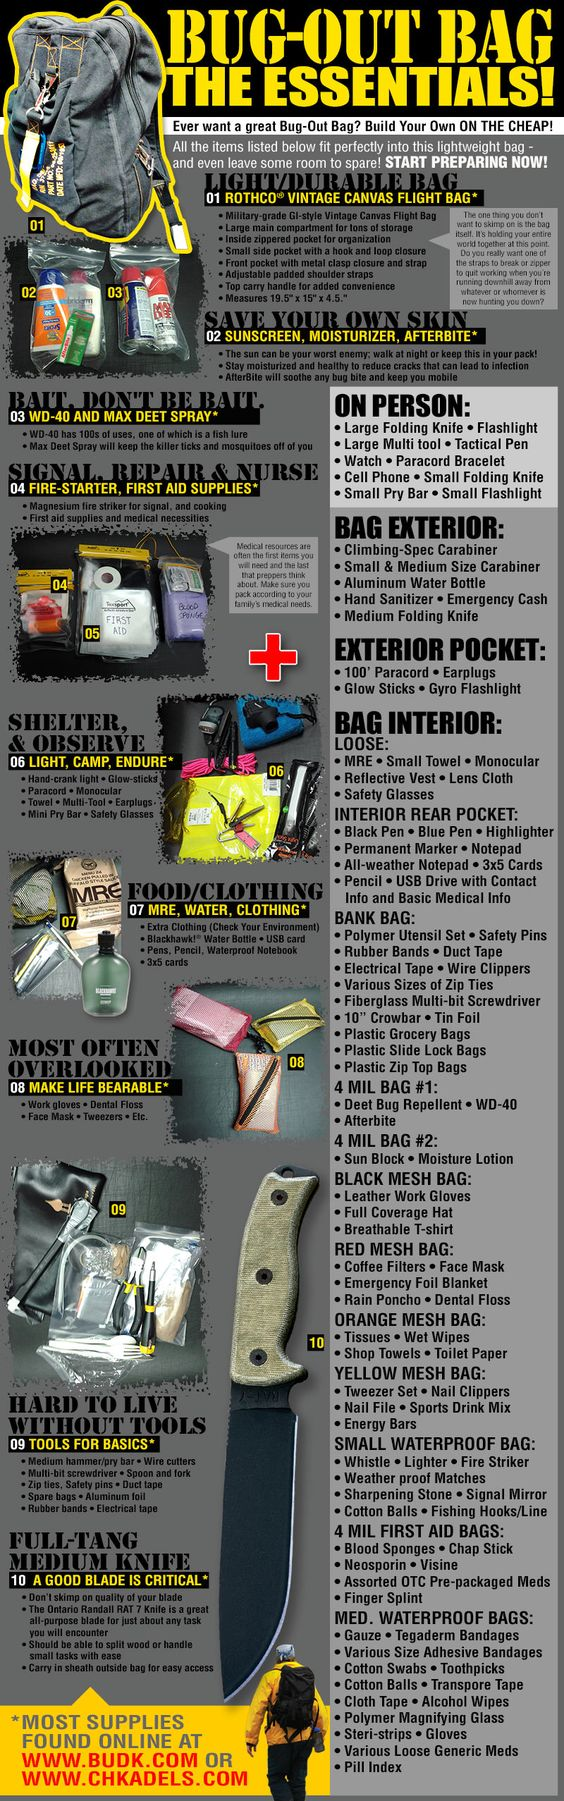 Things to have ready in case of emergency. Build a Bug Out Bag